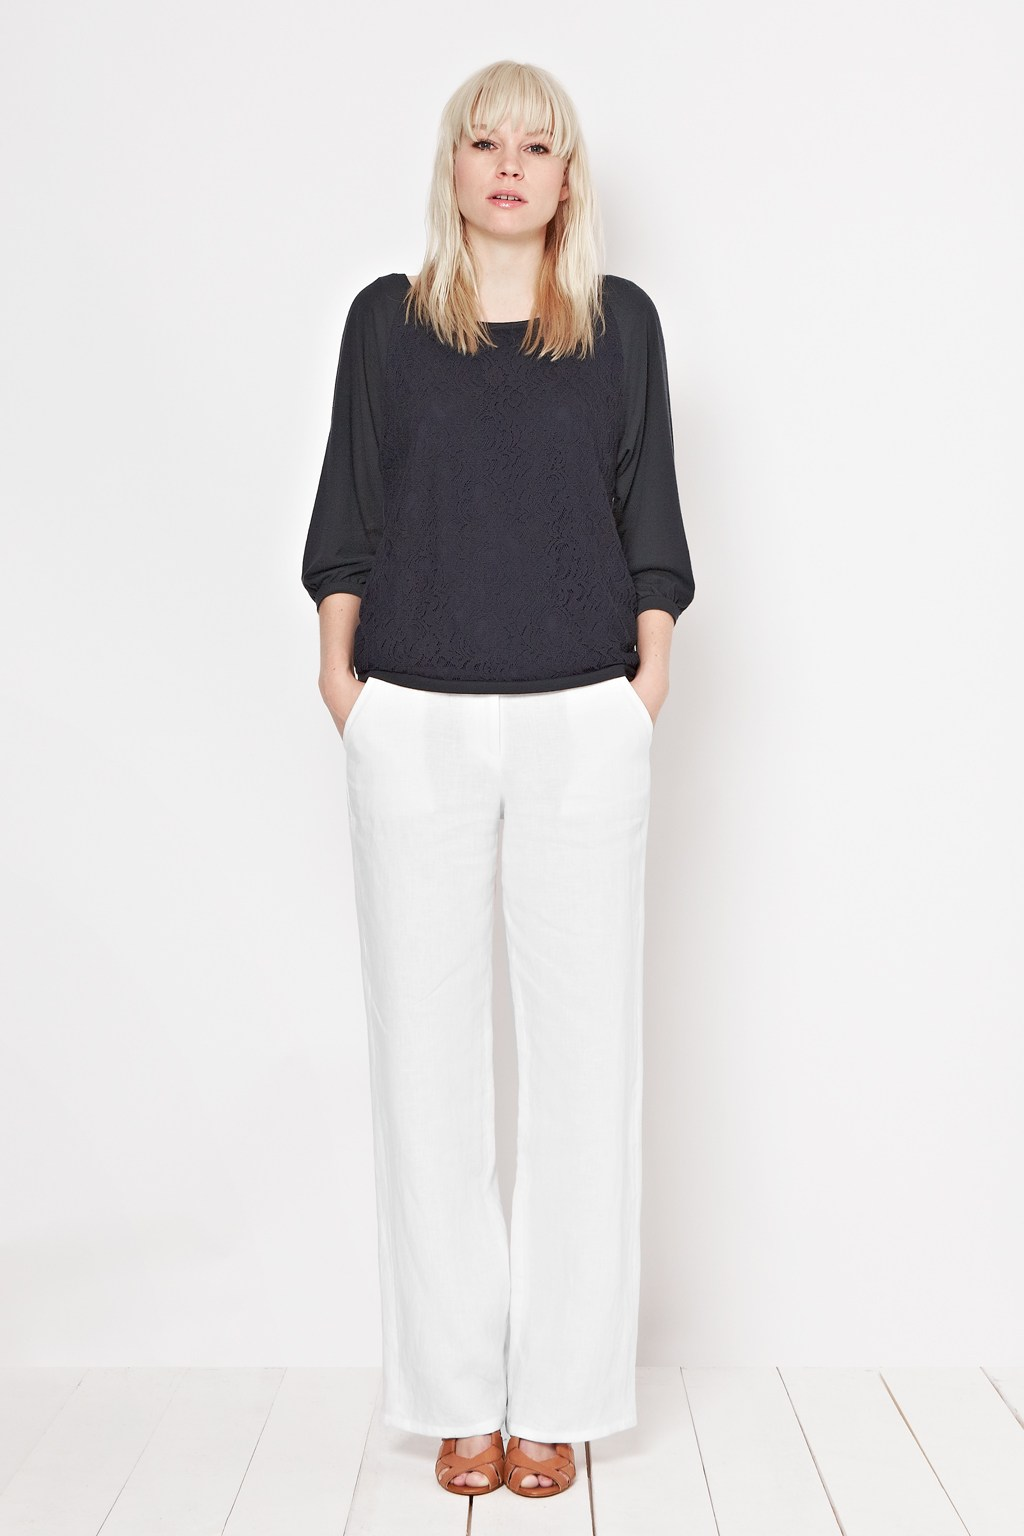 What Shoes To Wear With Wide Leg Linen Trousers